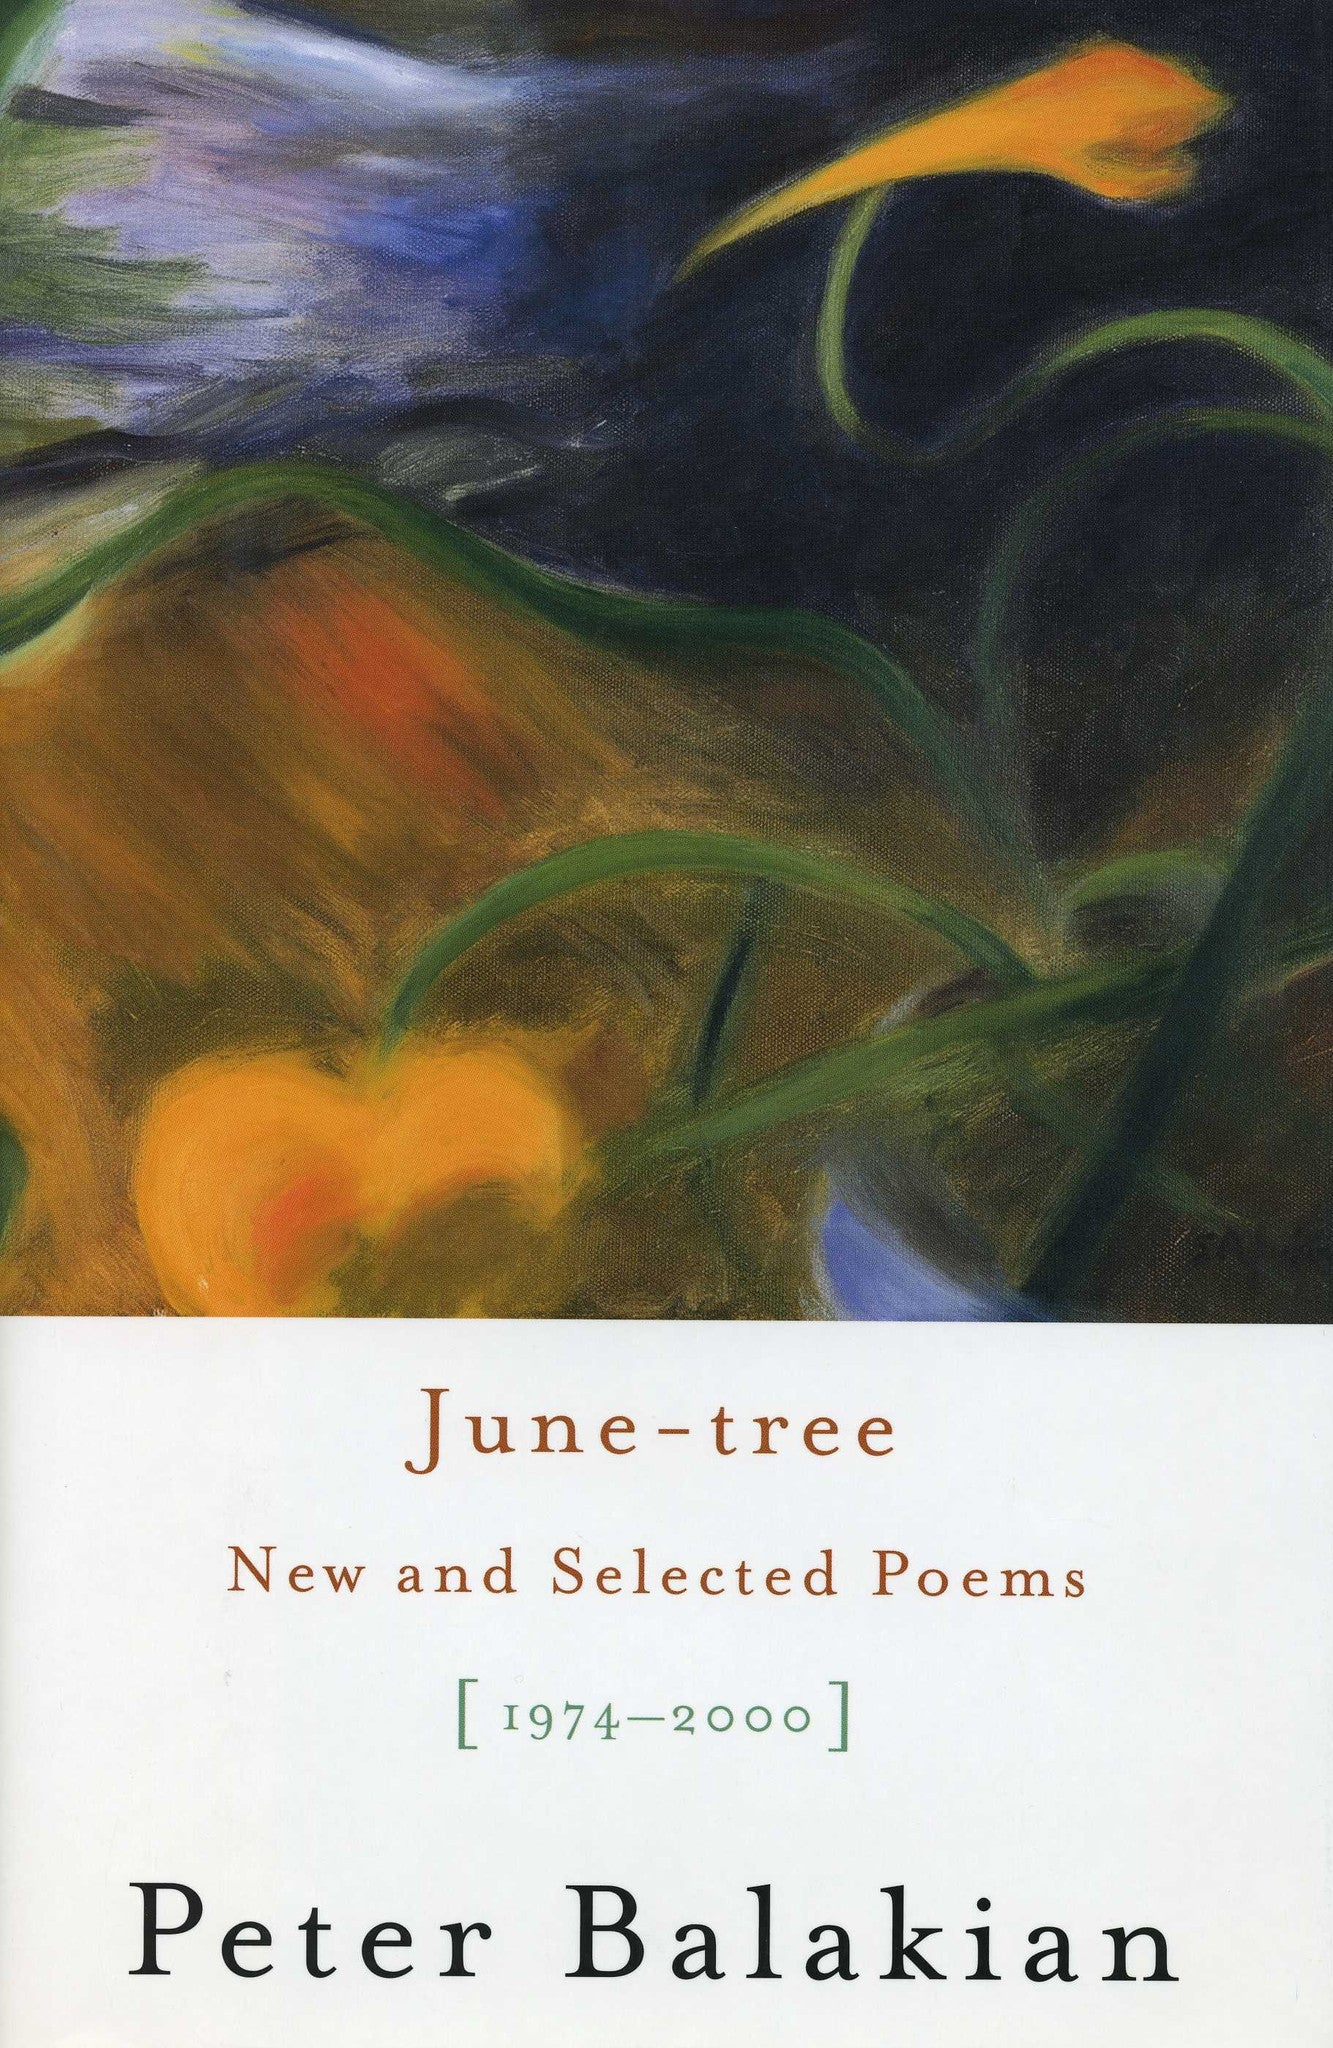 JUNE-TREE: New and Selected Poems (1974-2000)